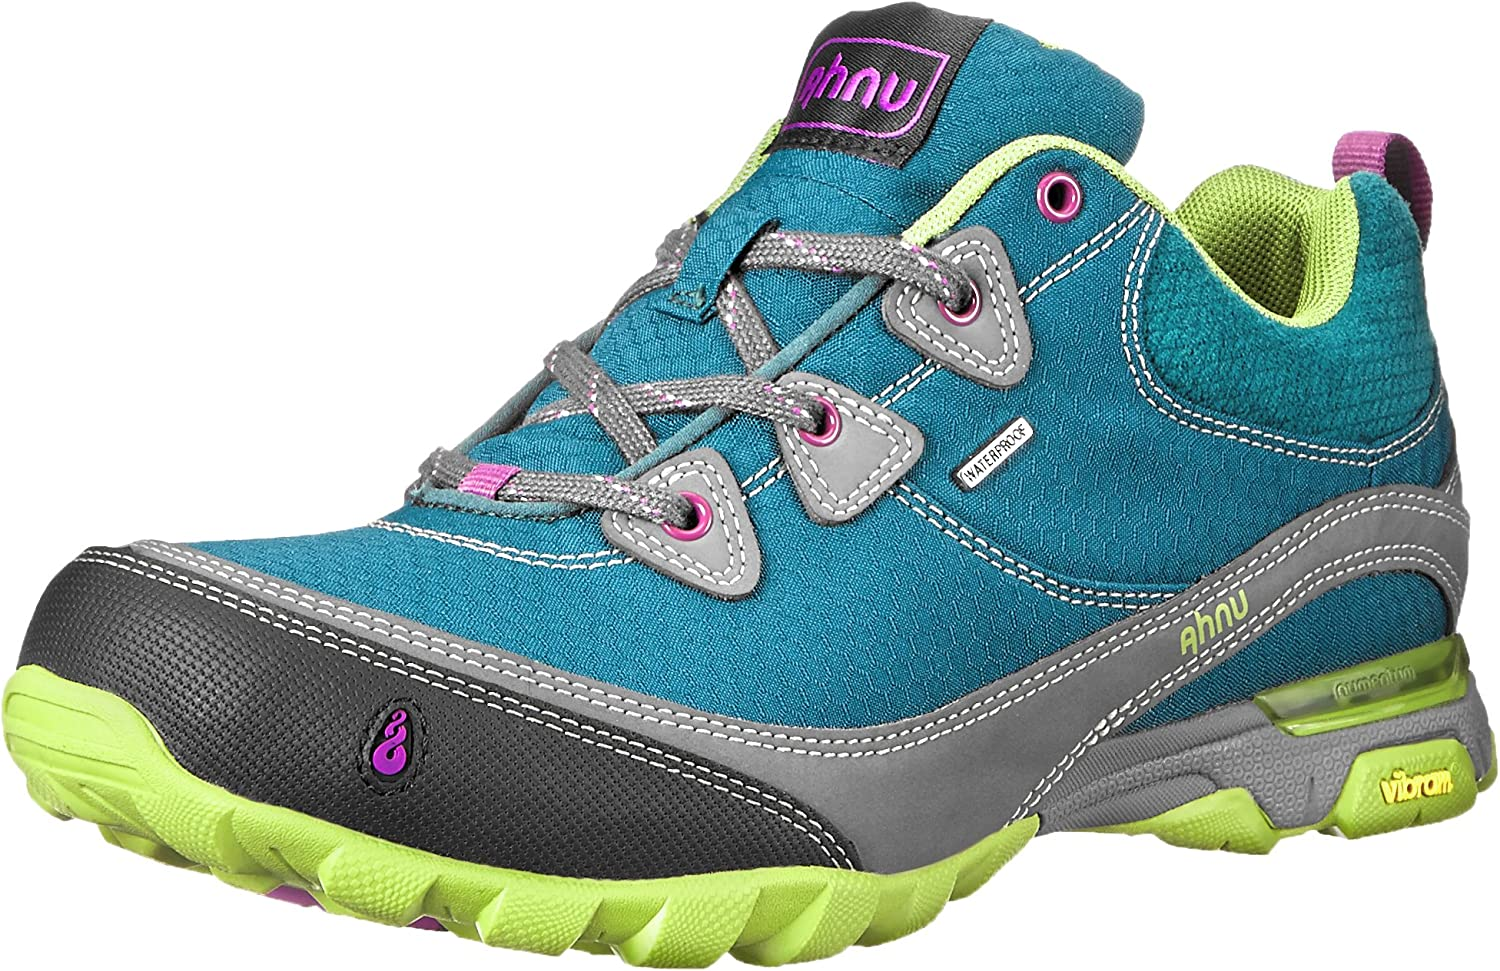 Image of Ahnu Women's Sugarpine Hiking Shoe Hiking Shoes